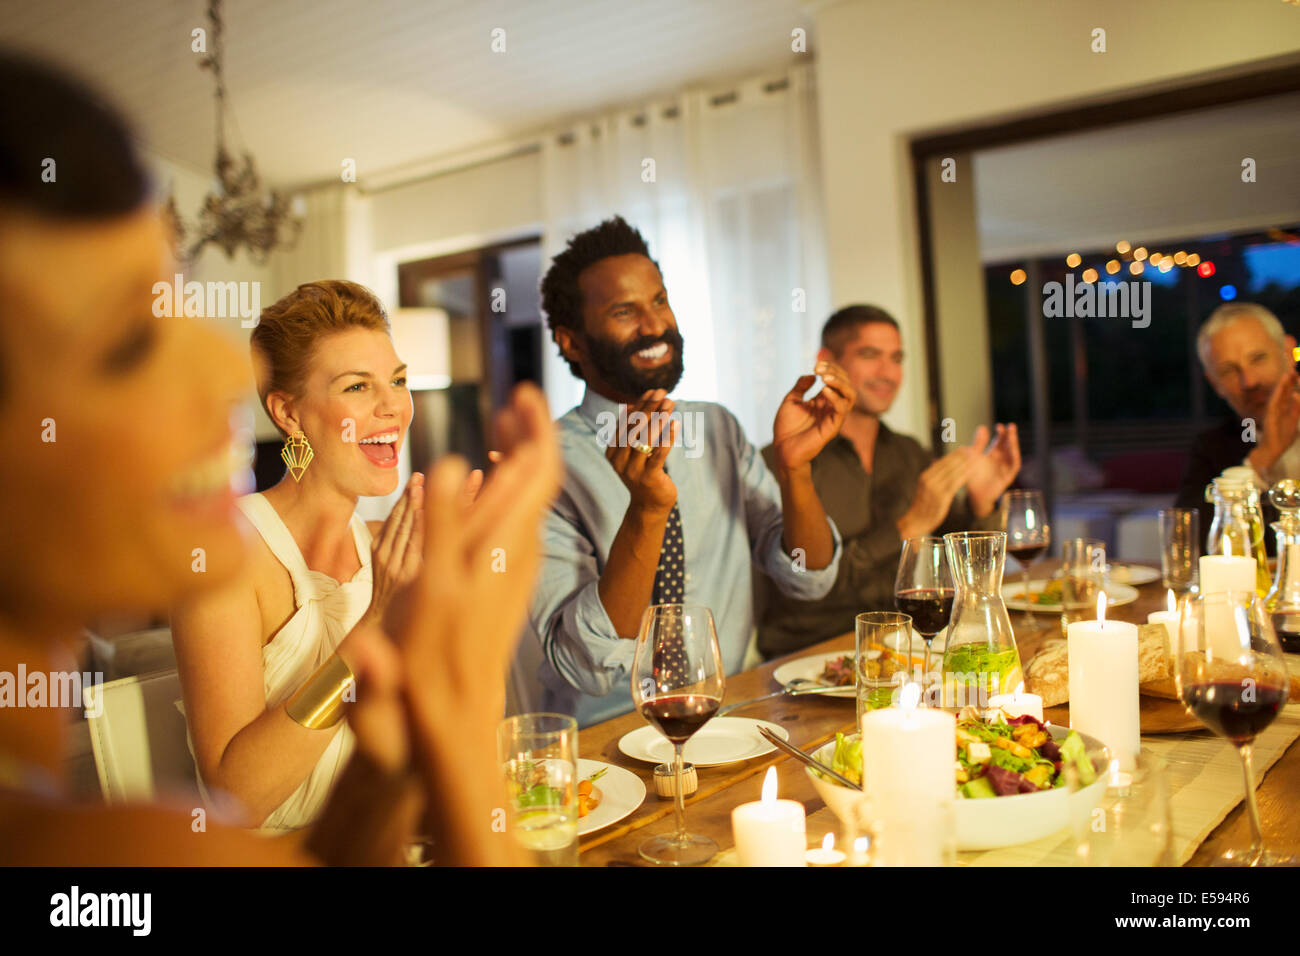 Friends cheering at dinner party - Stock Image